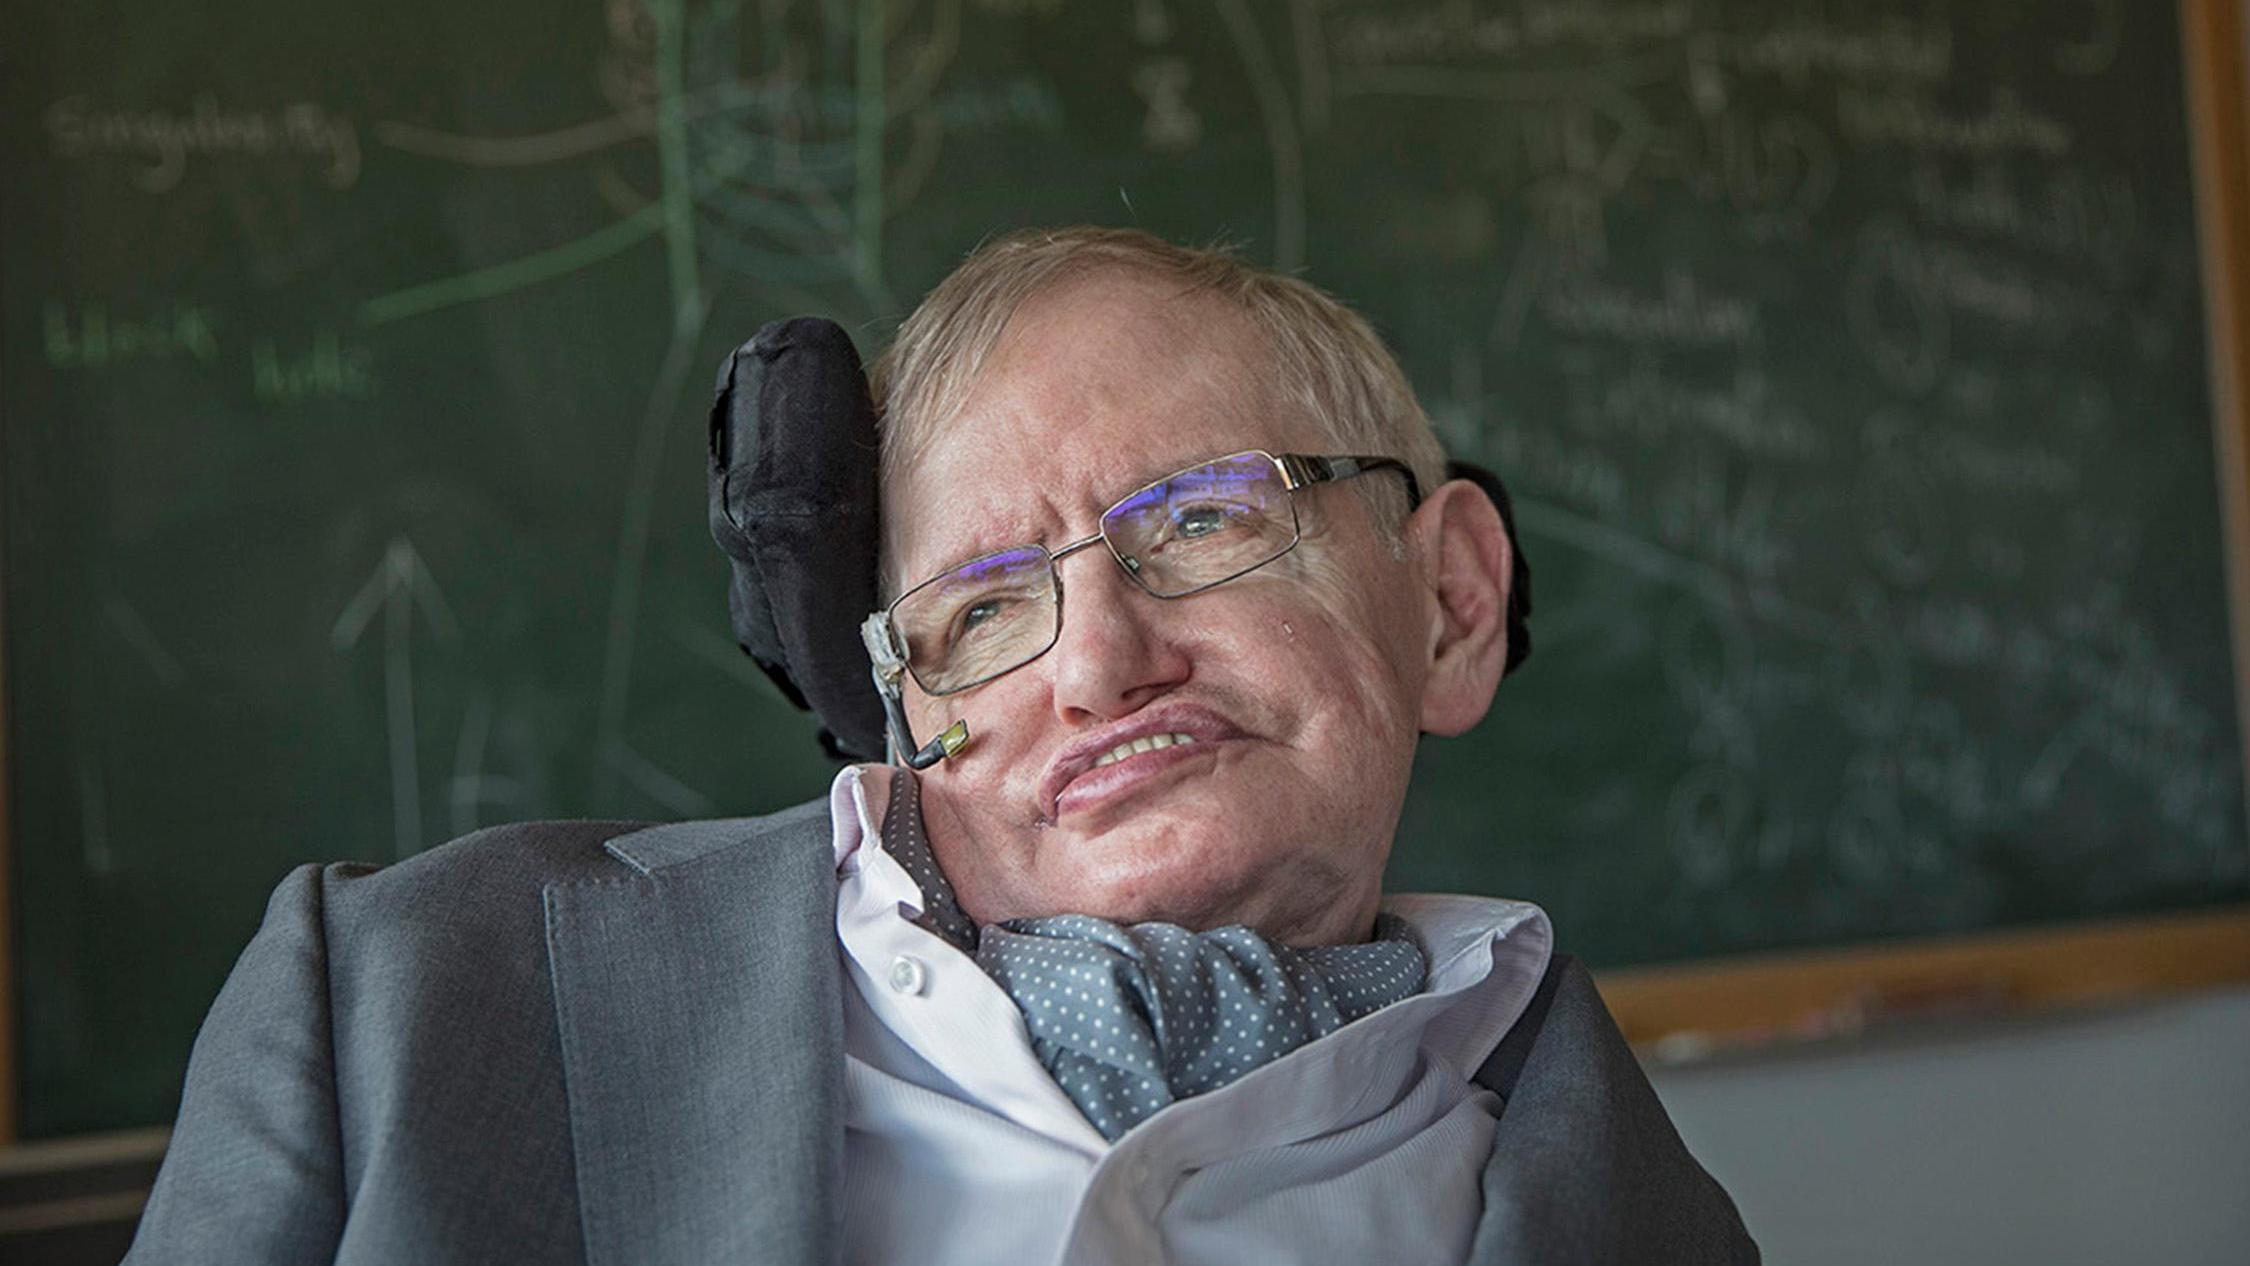 'There is NO GOD' Stephen Hawking's final revelation of the afterlife REVEALED